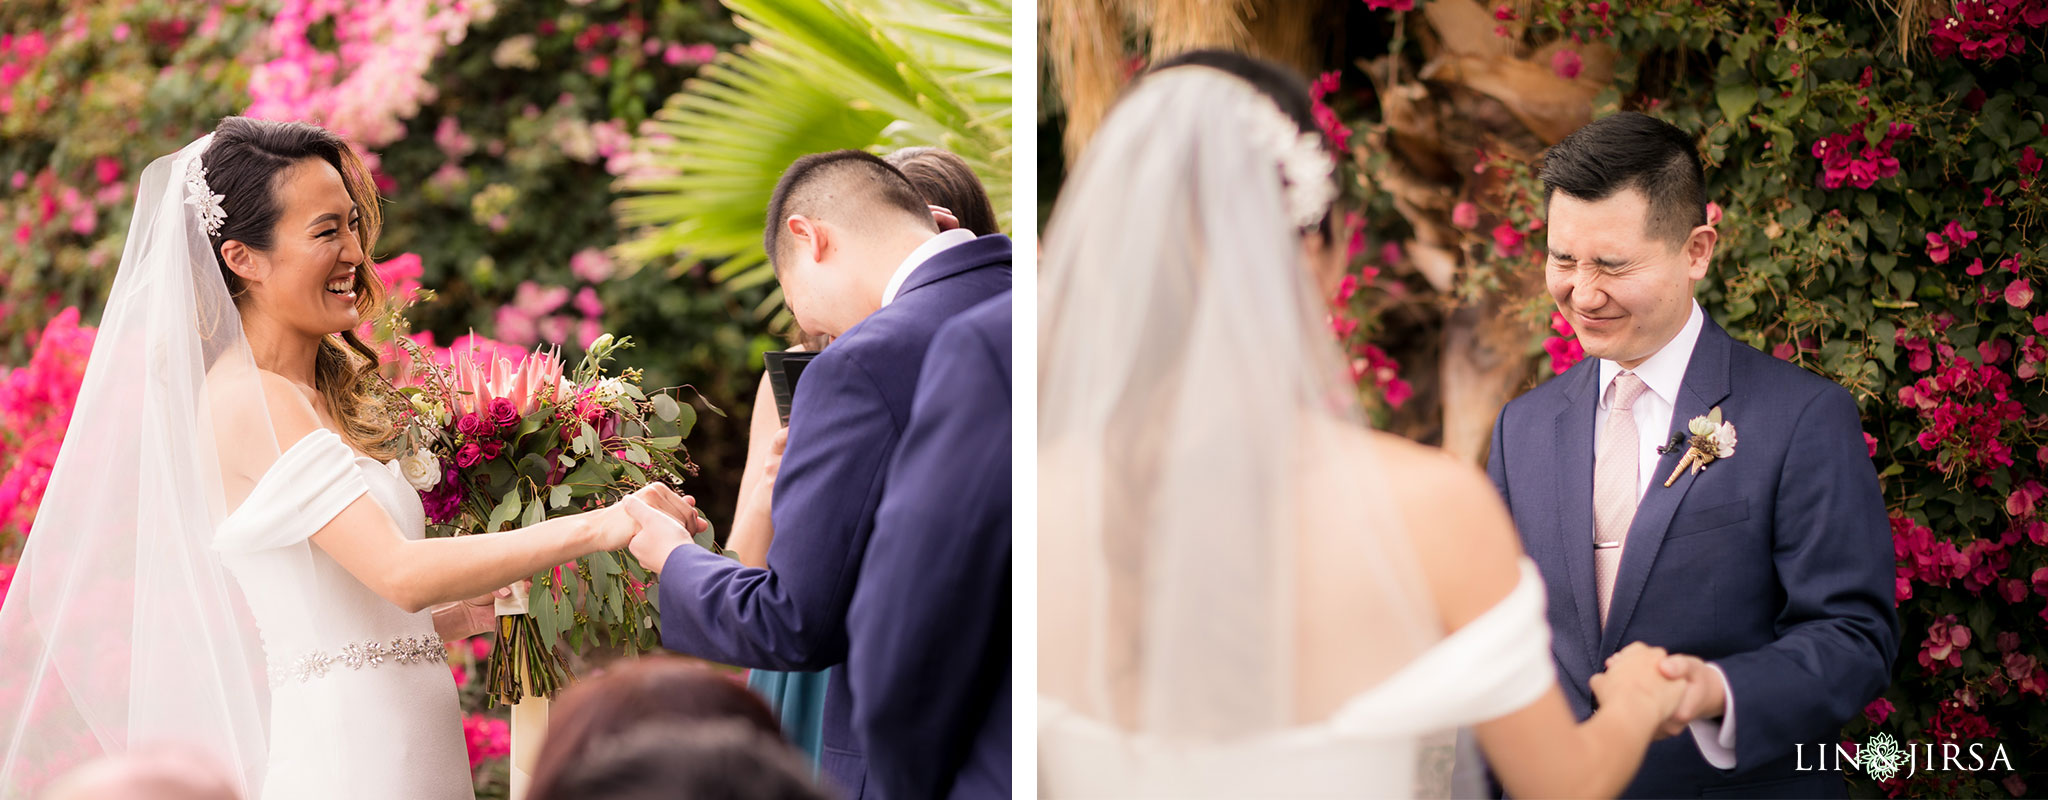 20 odonnell house palm springs wedding ceremony photography